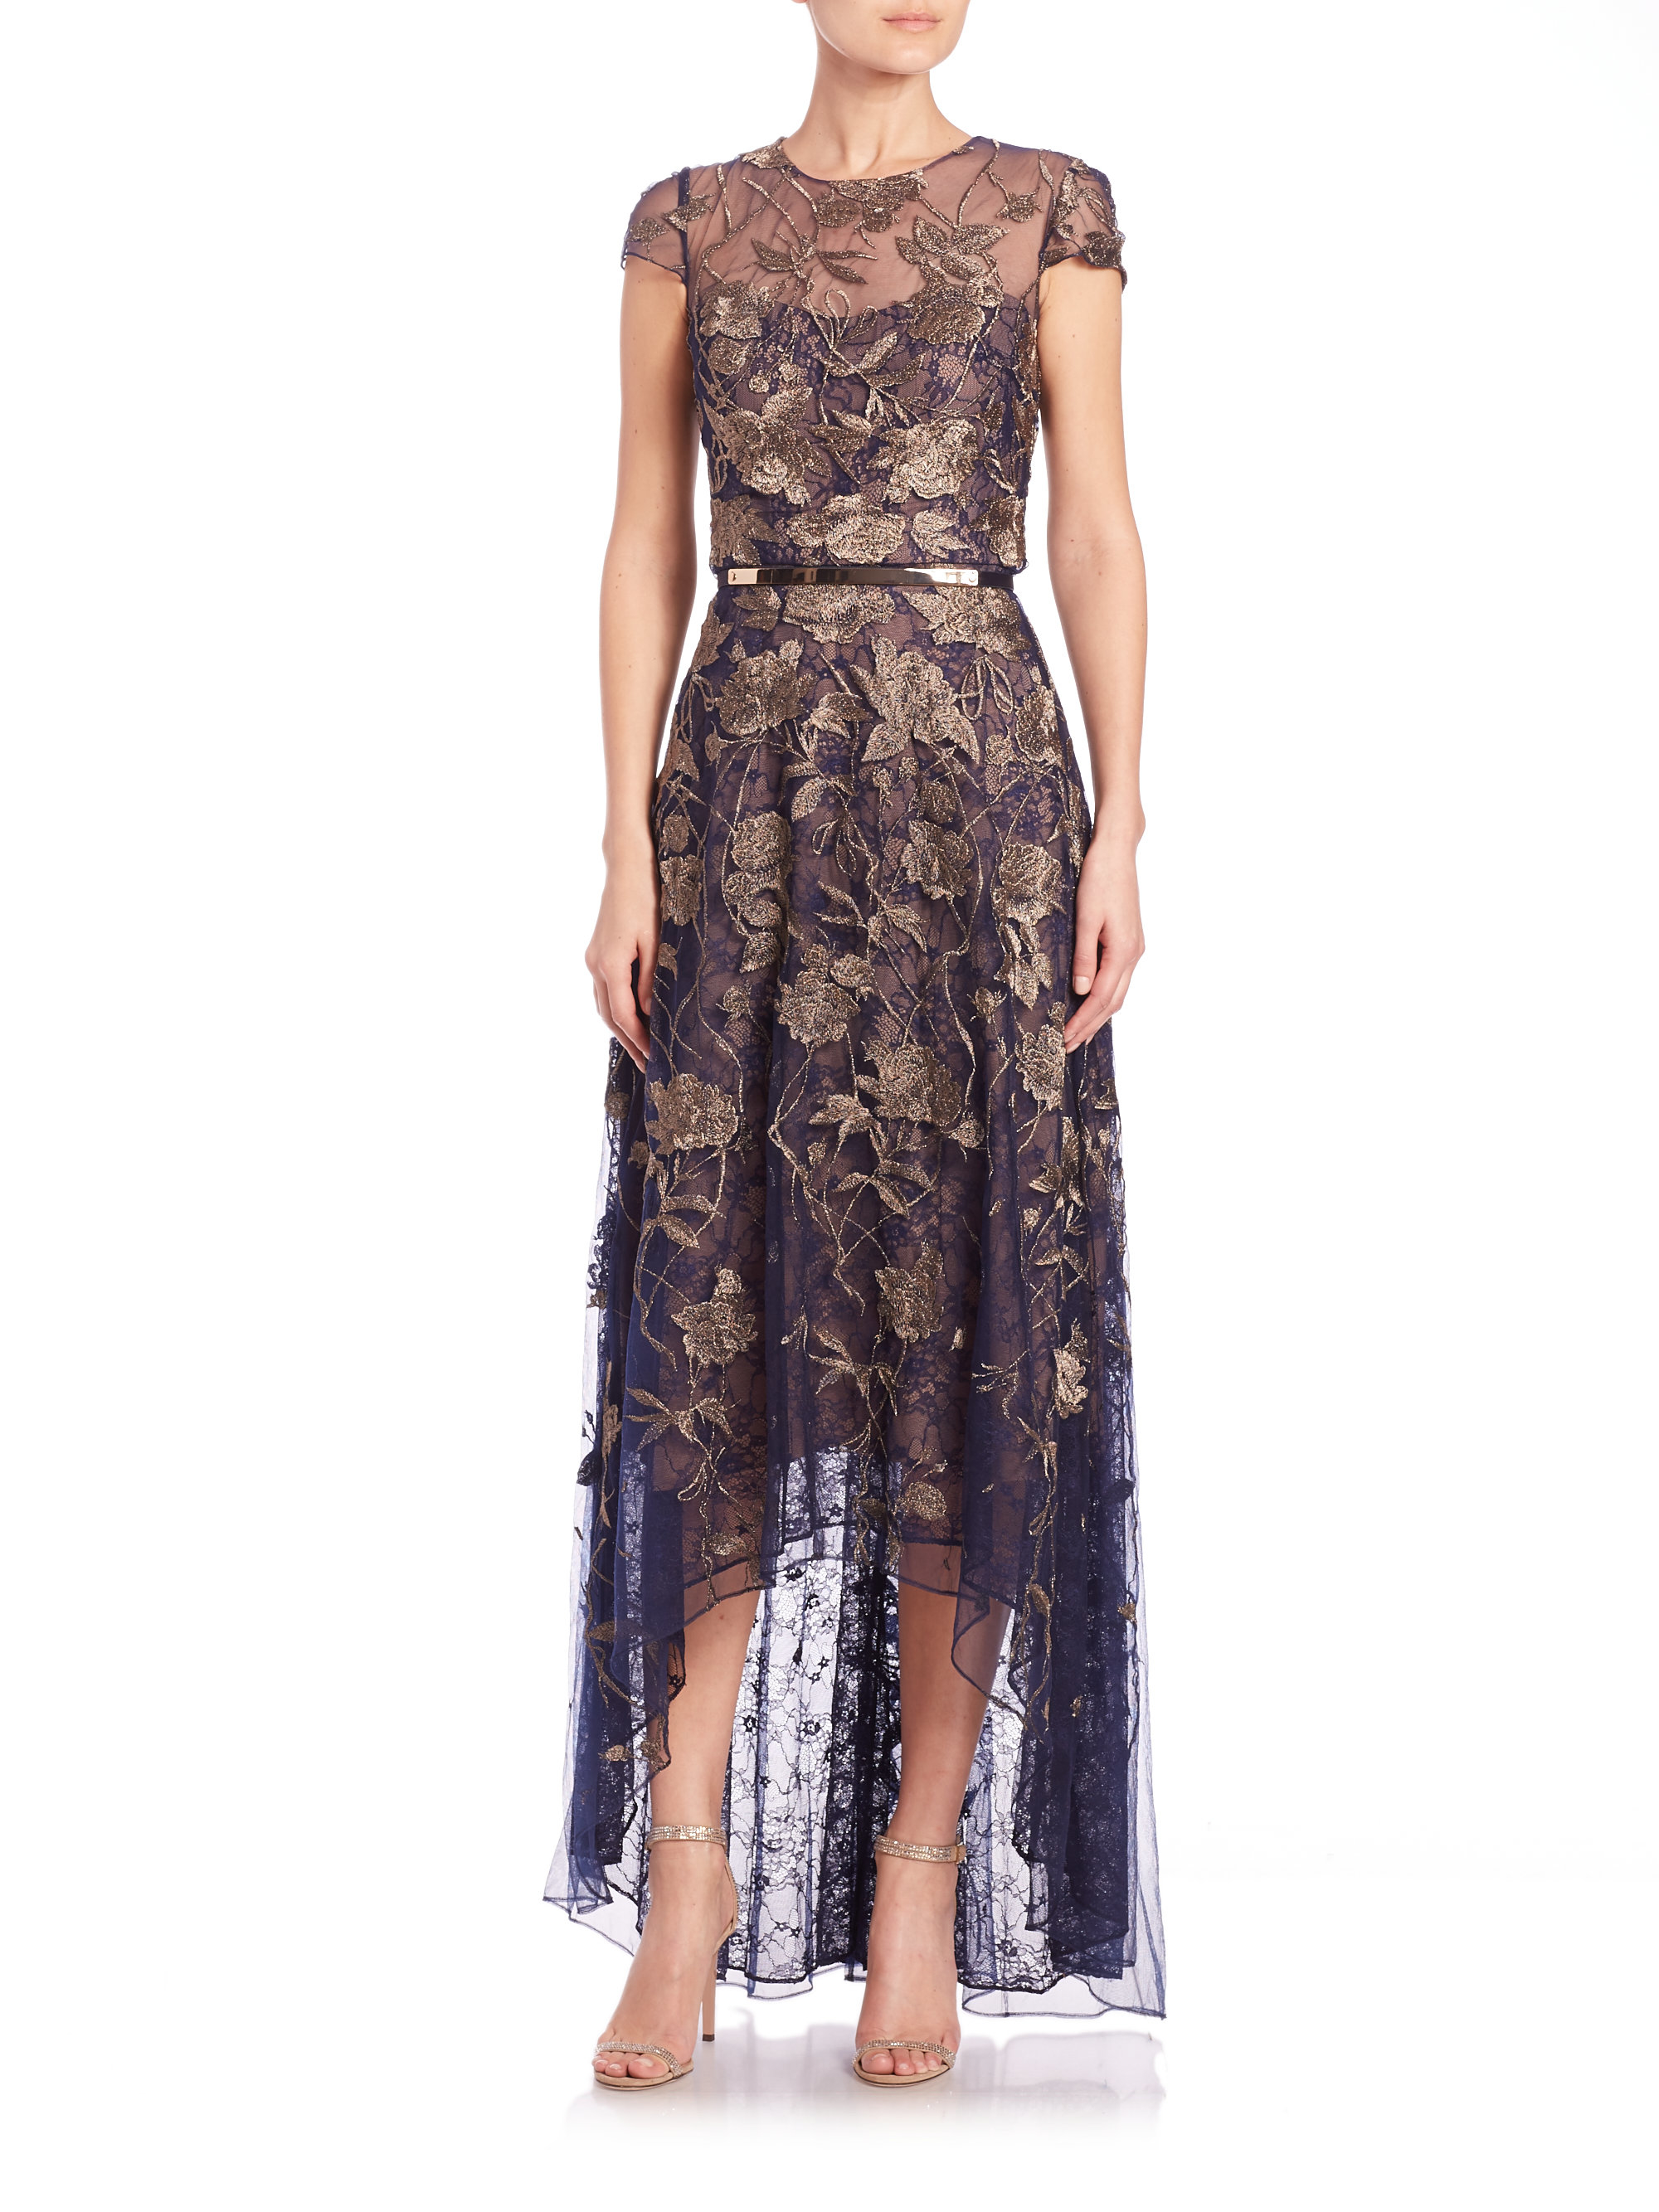 9c72a18e Marchesa notte Embroidered Tulle Gown in Metallic - Lyst